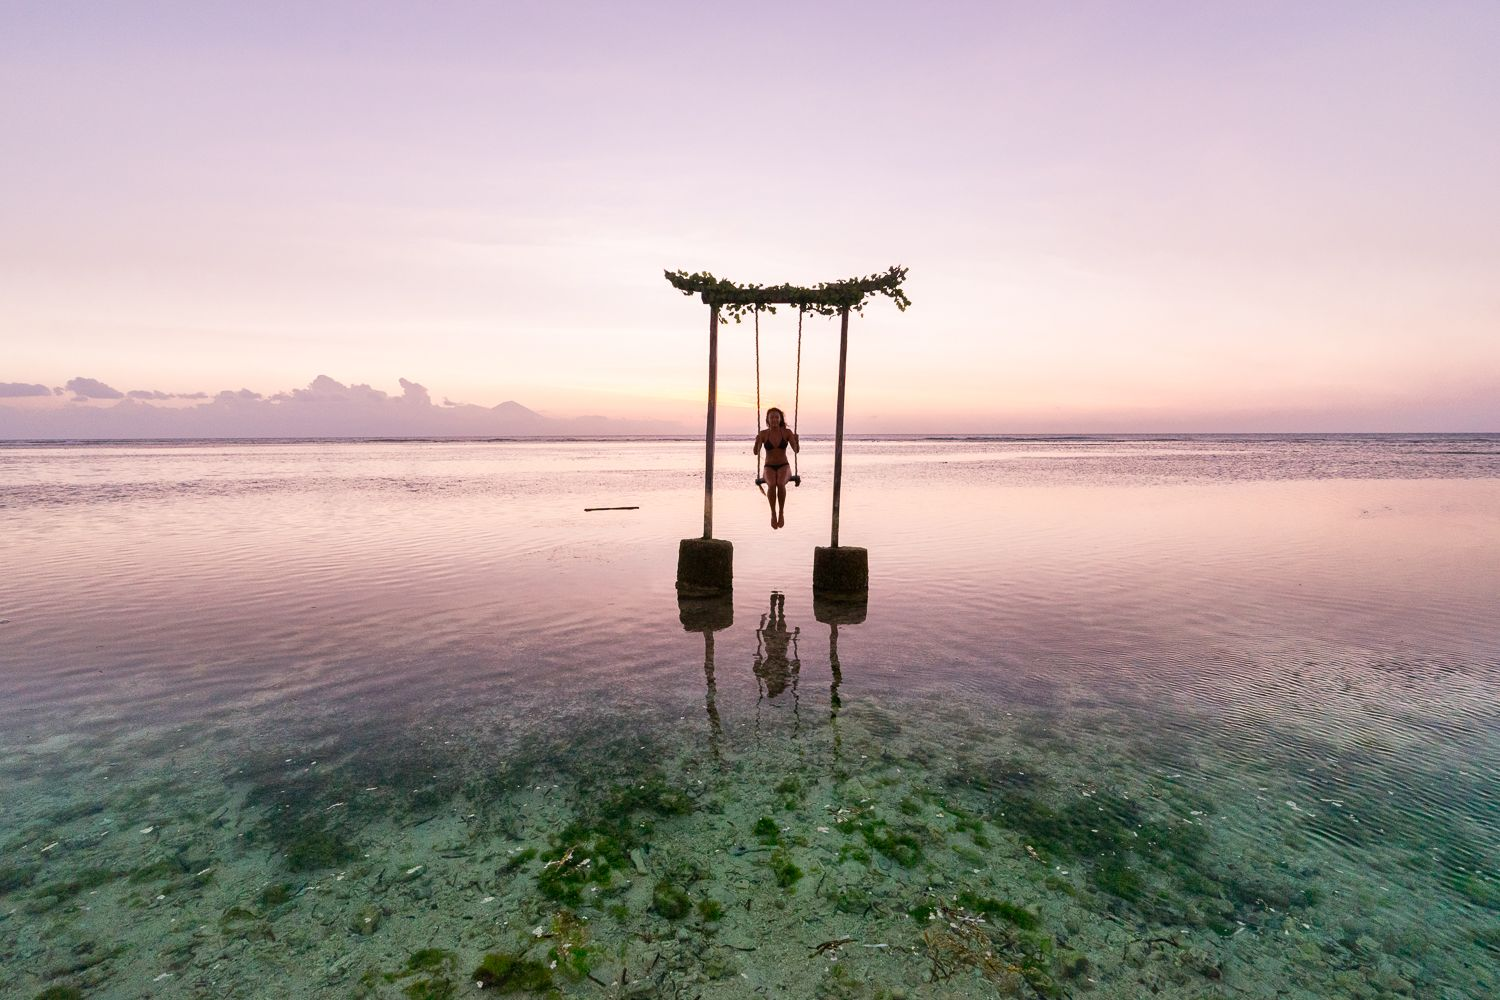 Floating above crystal clear water, to the backdrop of an amazing sunset, the Gili Trawangan swing is a great way to spend a sunset. But be prepared for...